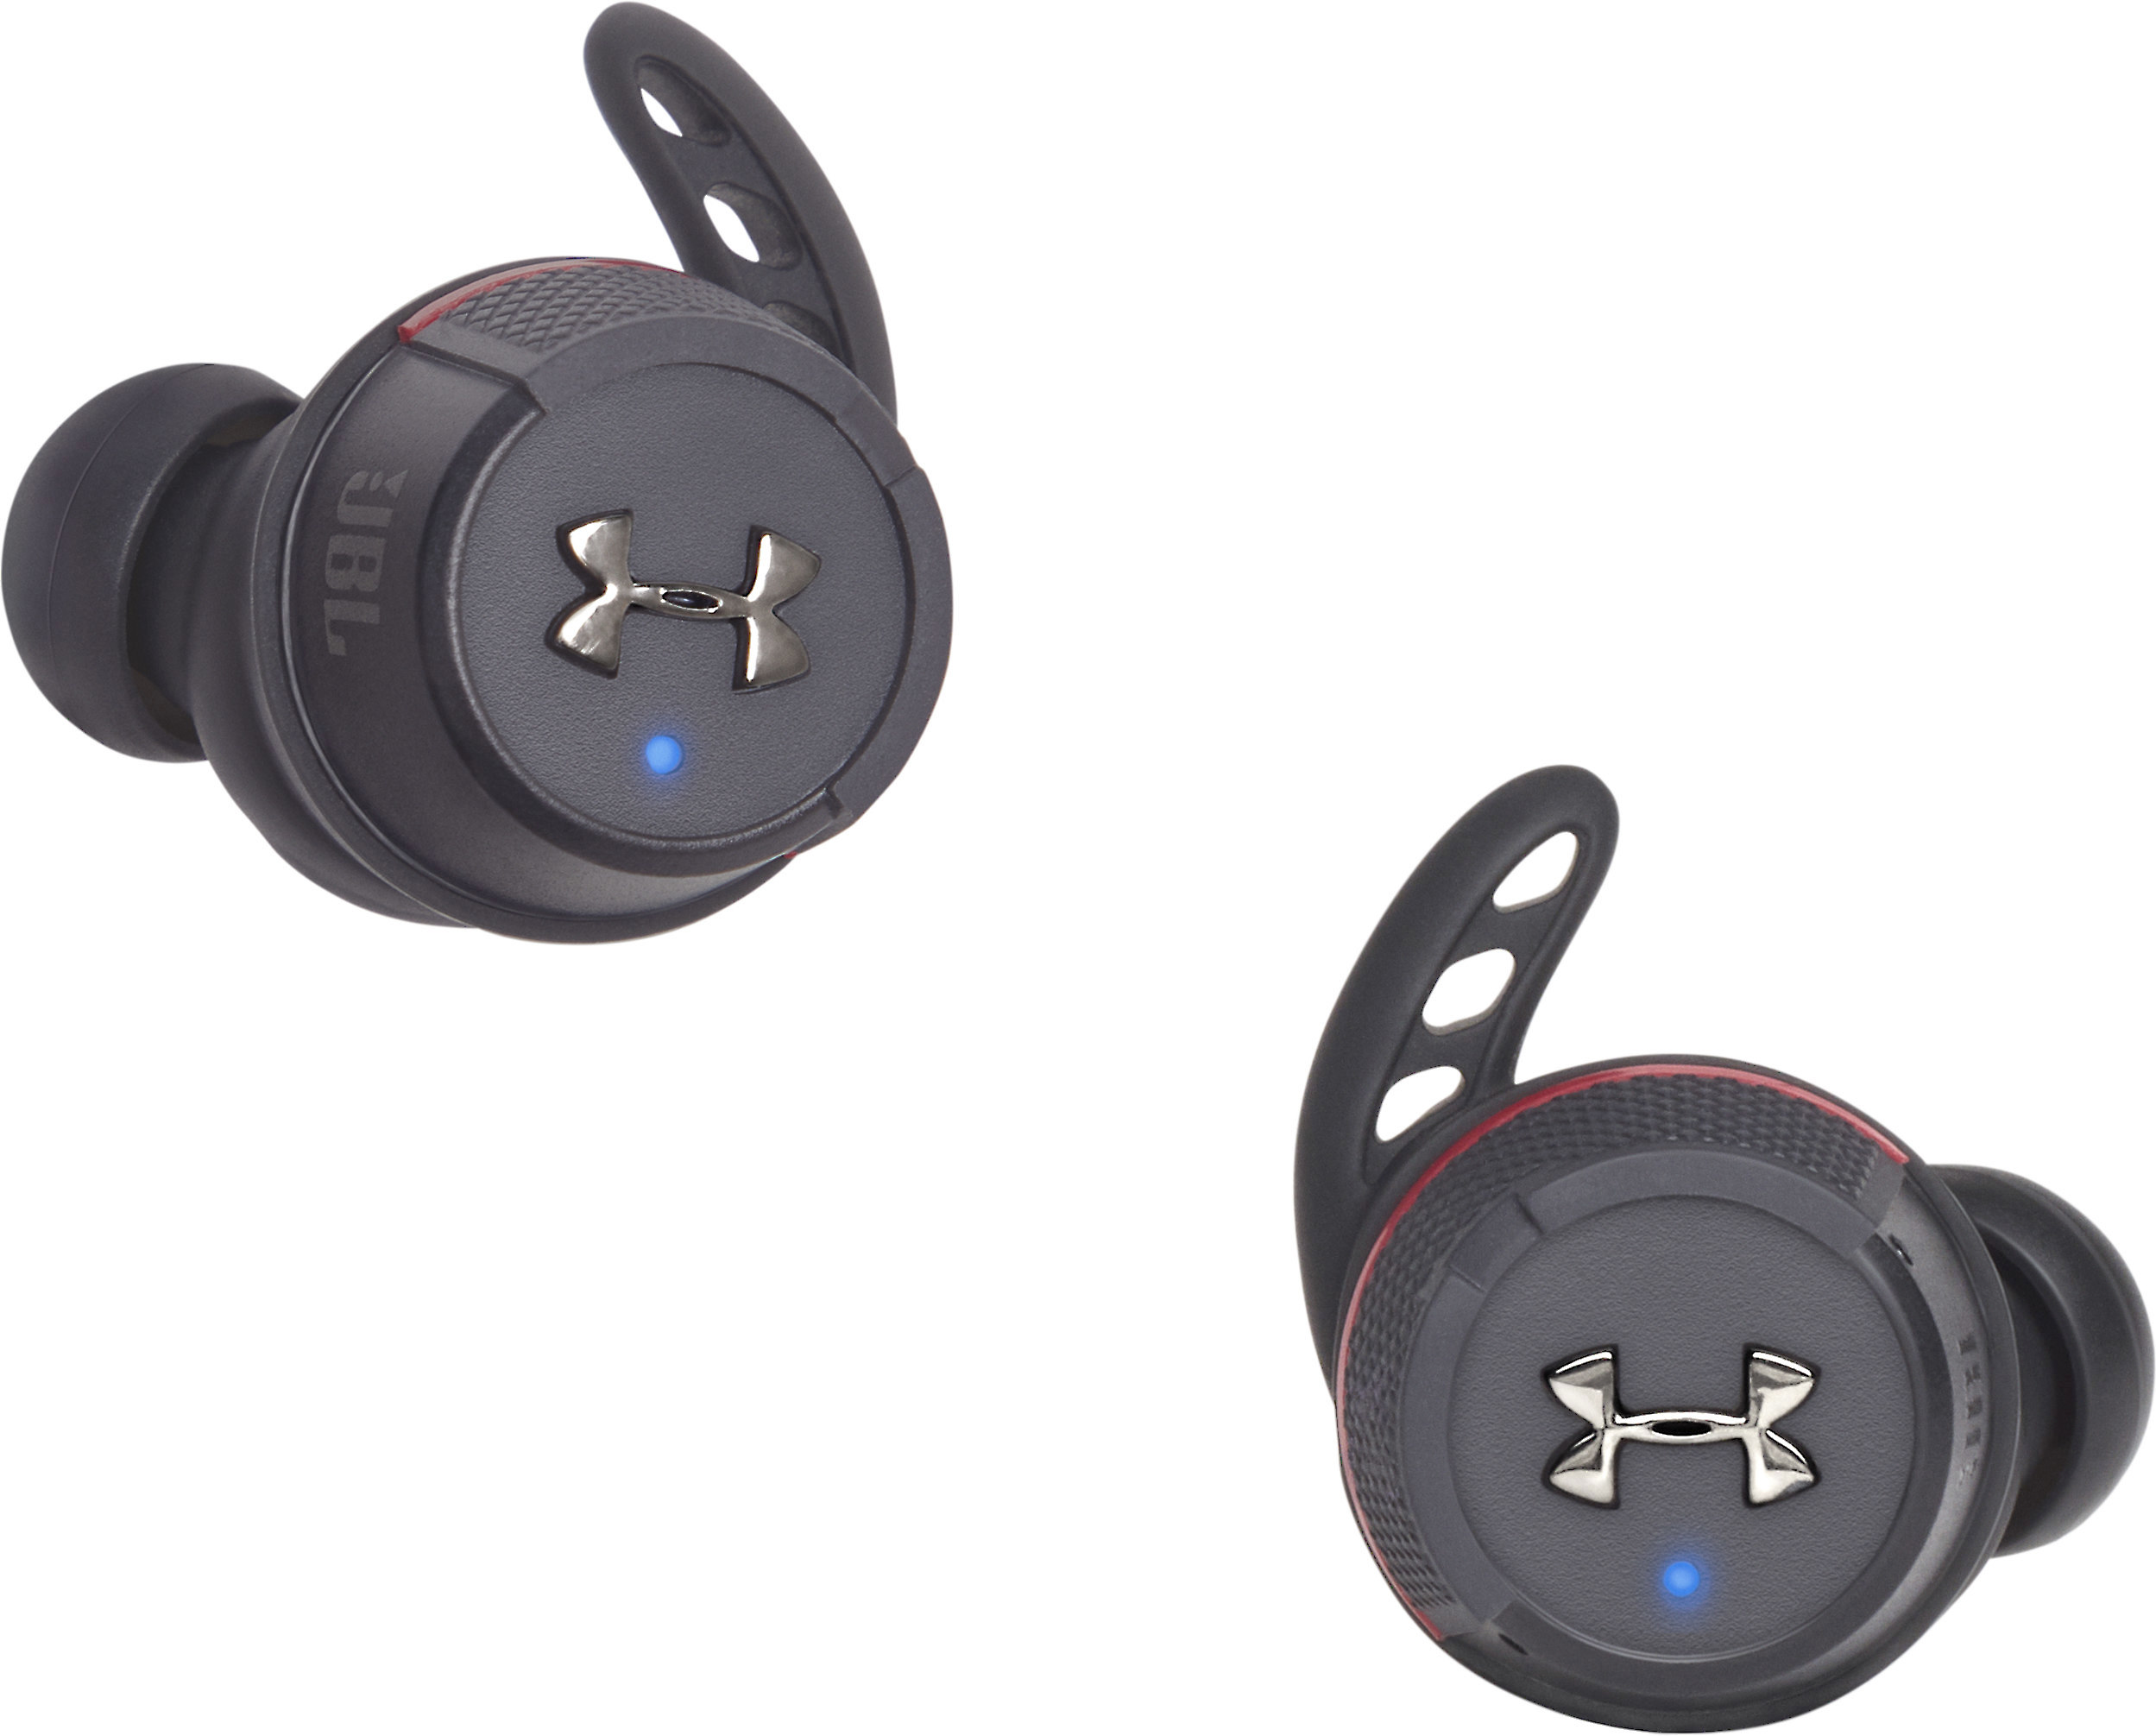 Under Armour True Wireless Flash Engineered By Jbl True Wireless Sports Earbuds With Bluetooth At Crutchfield